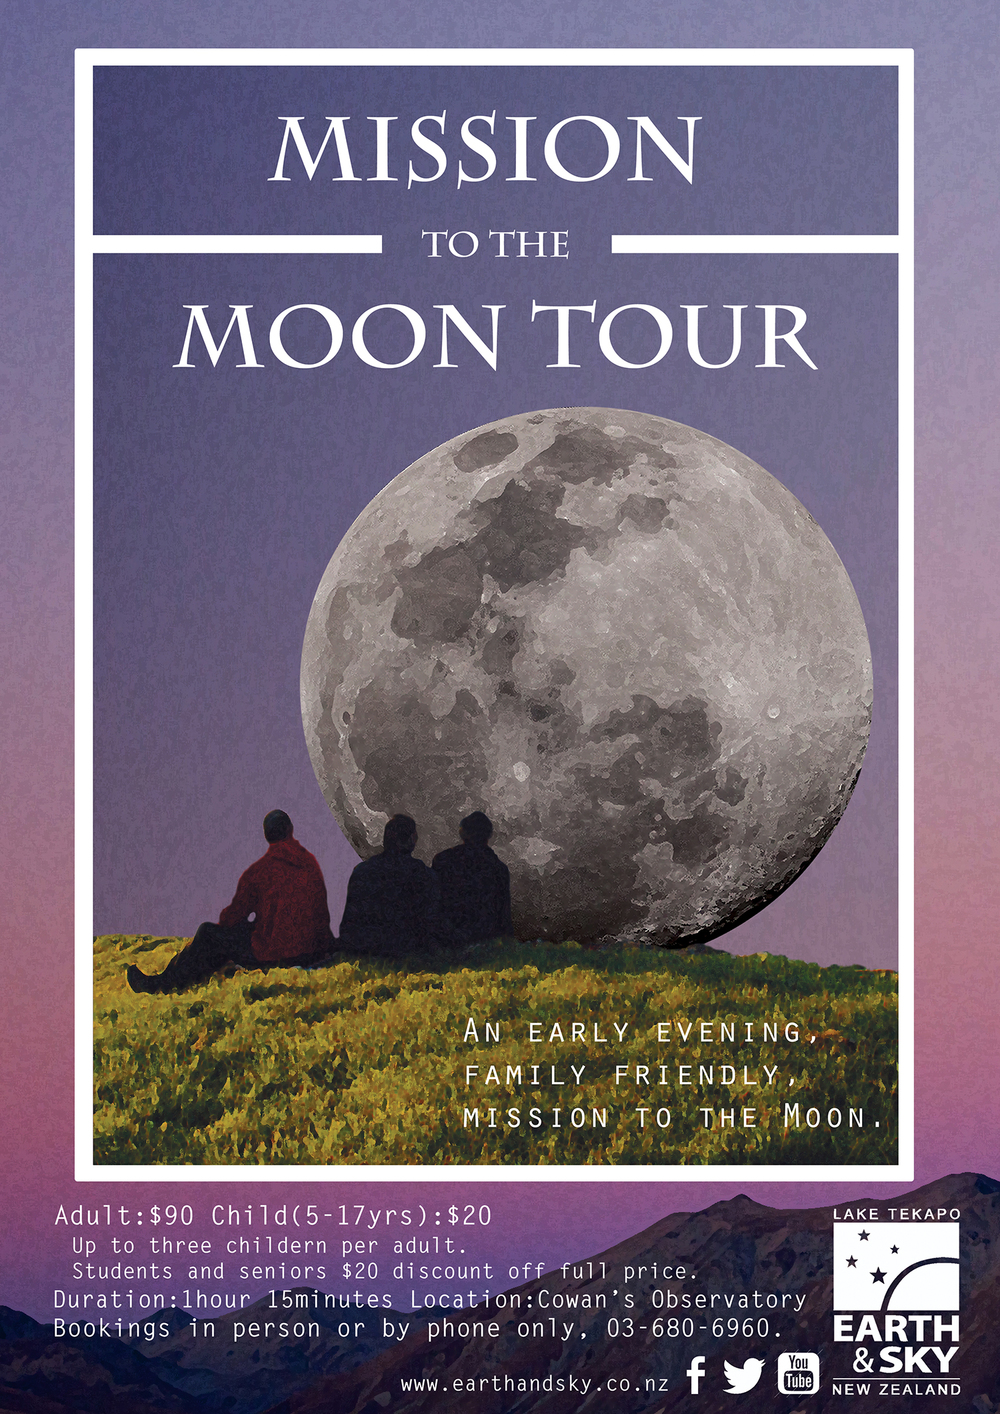 mission to the moon tour_2.jpg